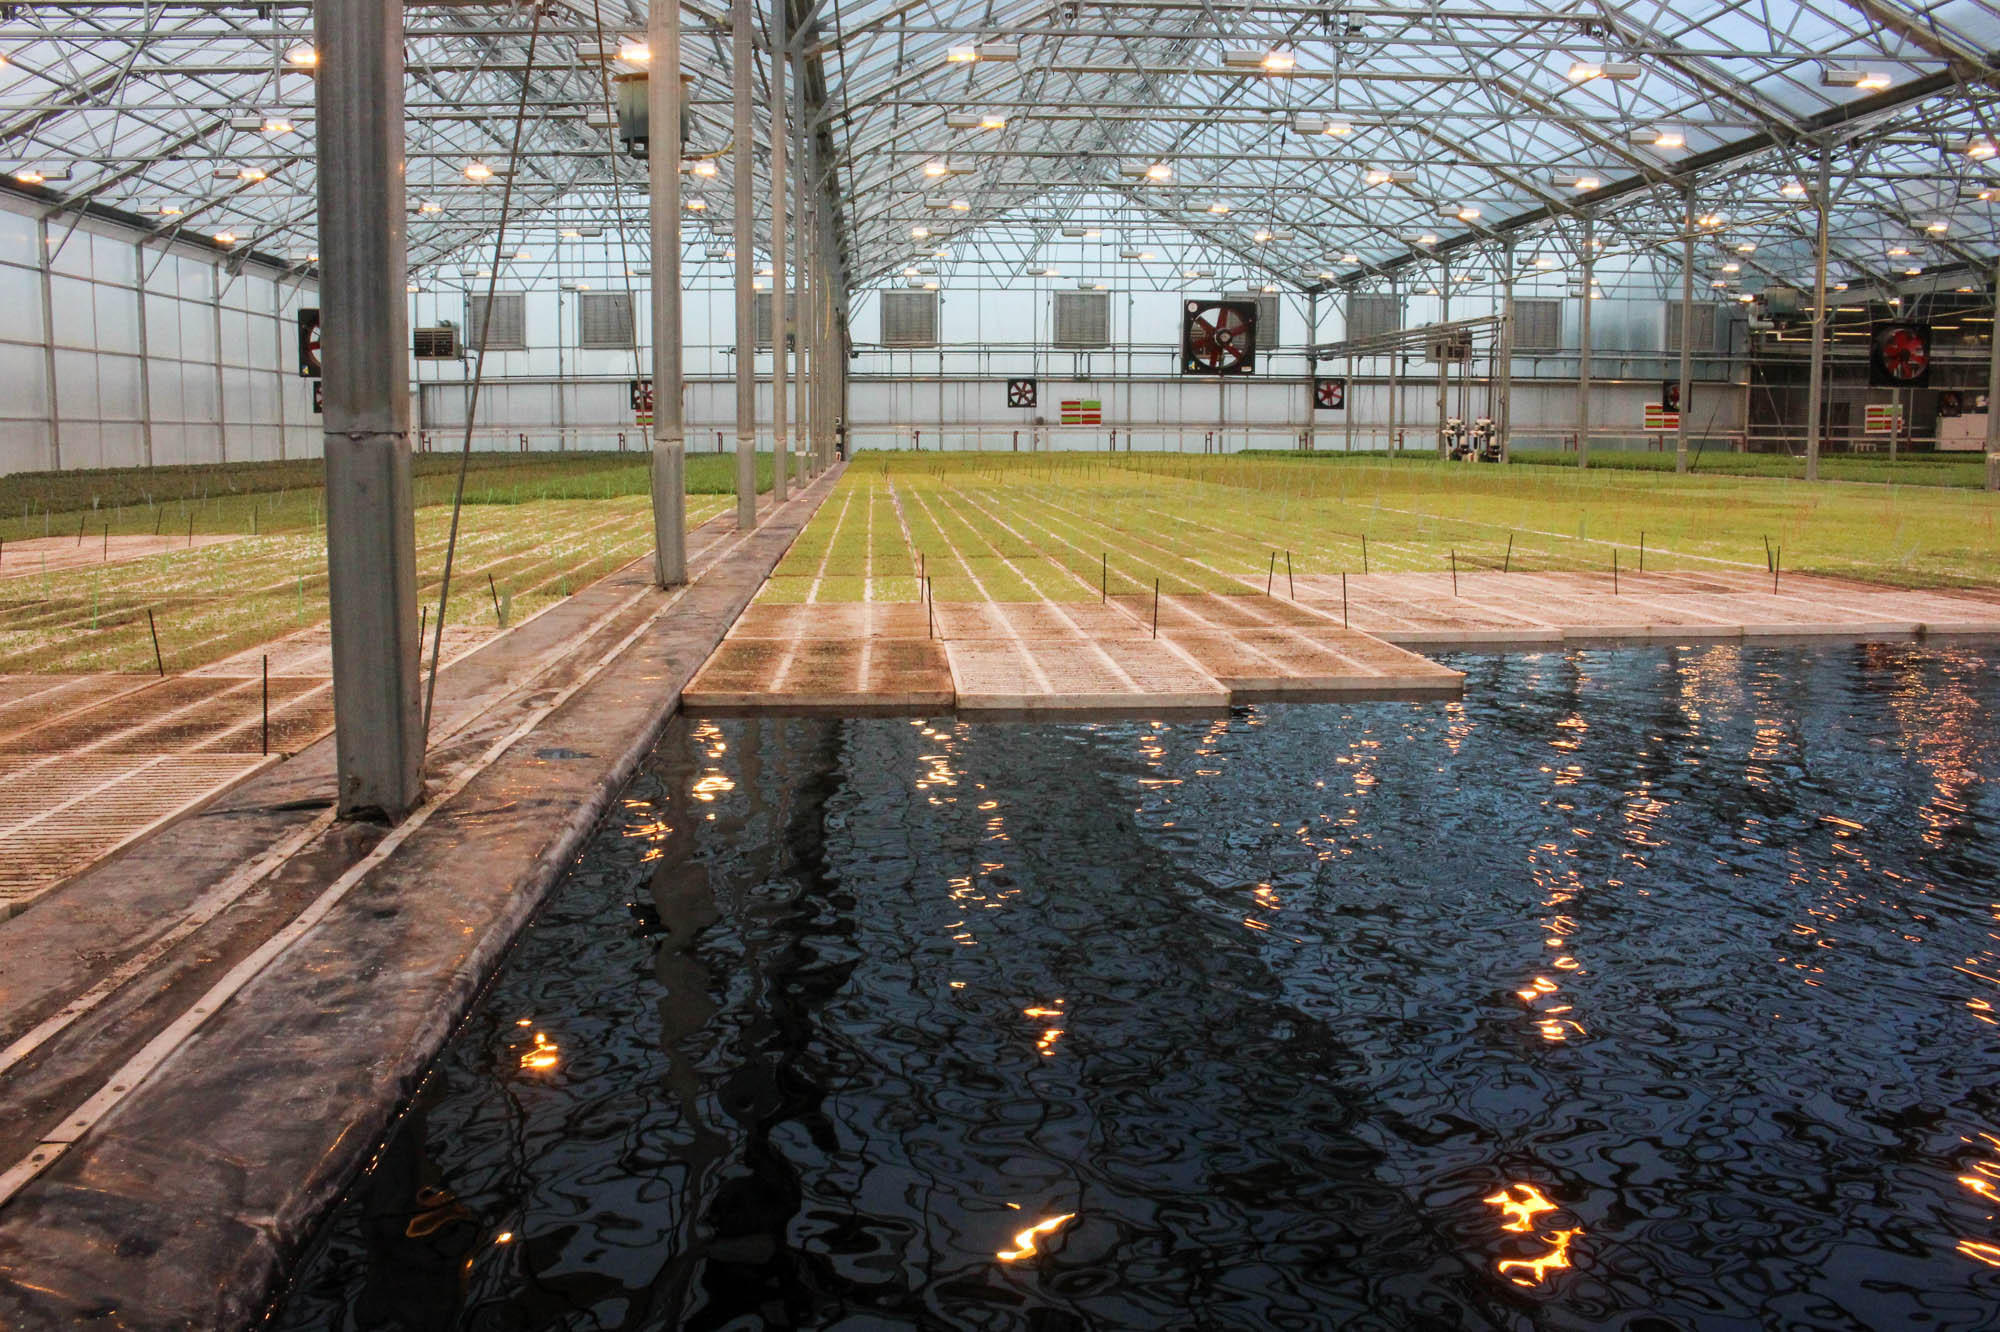 In The Brightfarms Greenhouse Salad Greens Grow On Floating Boards Their Roots Extend Into Water Where They Get Nutrients